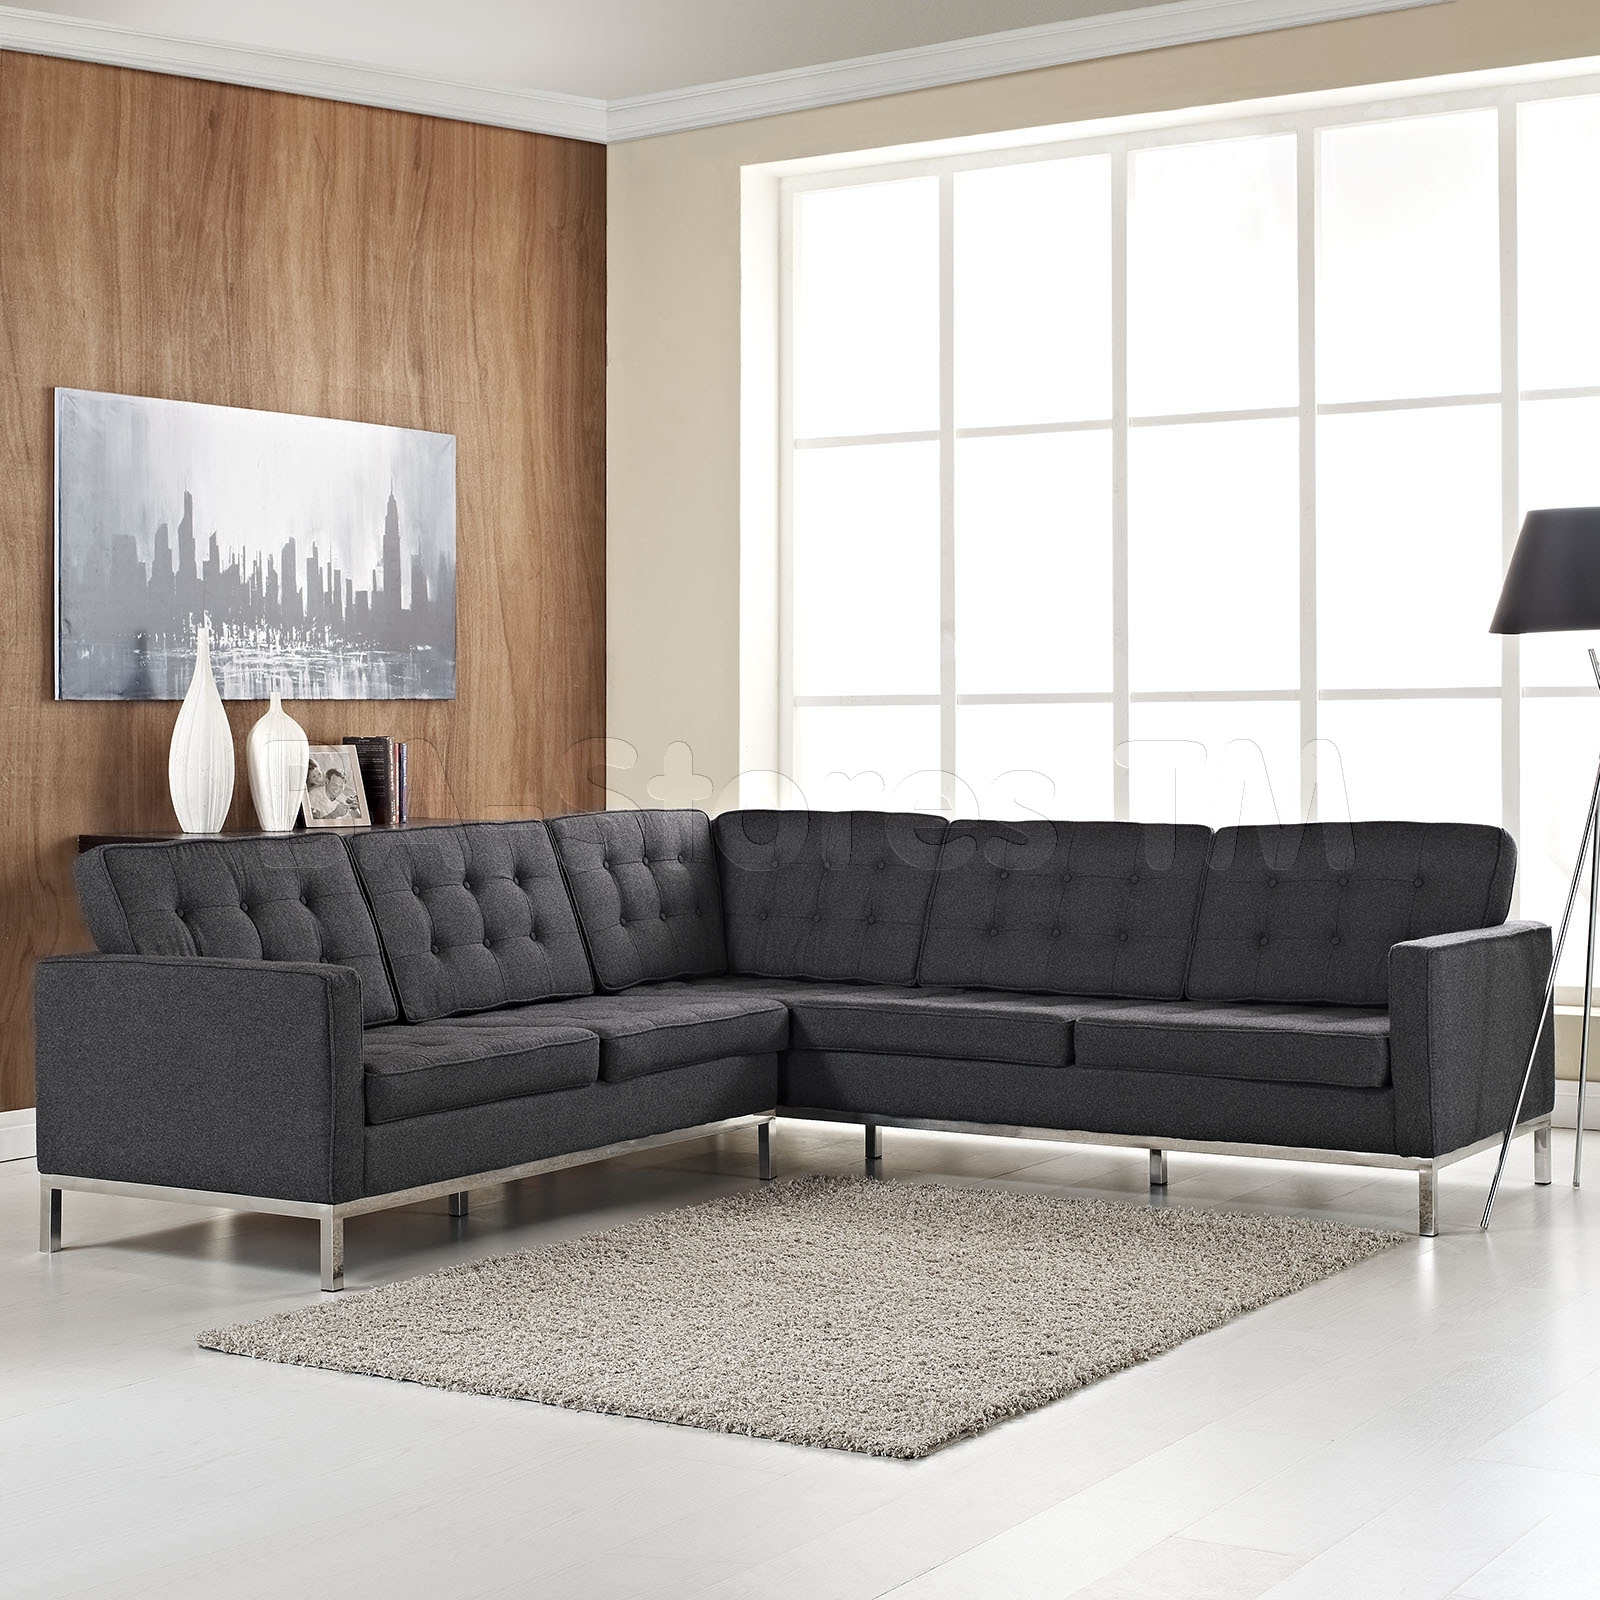 Beautiful L Shaped Sectional Sofas Contemporary Shape Sofa ~ Idolza With Regard To Sleek Sectional Sofas (Image 2 of 10)